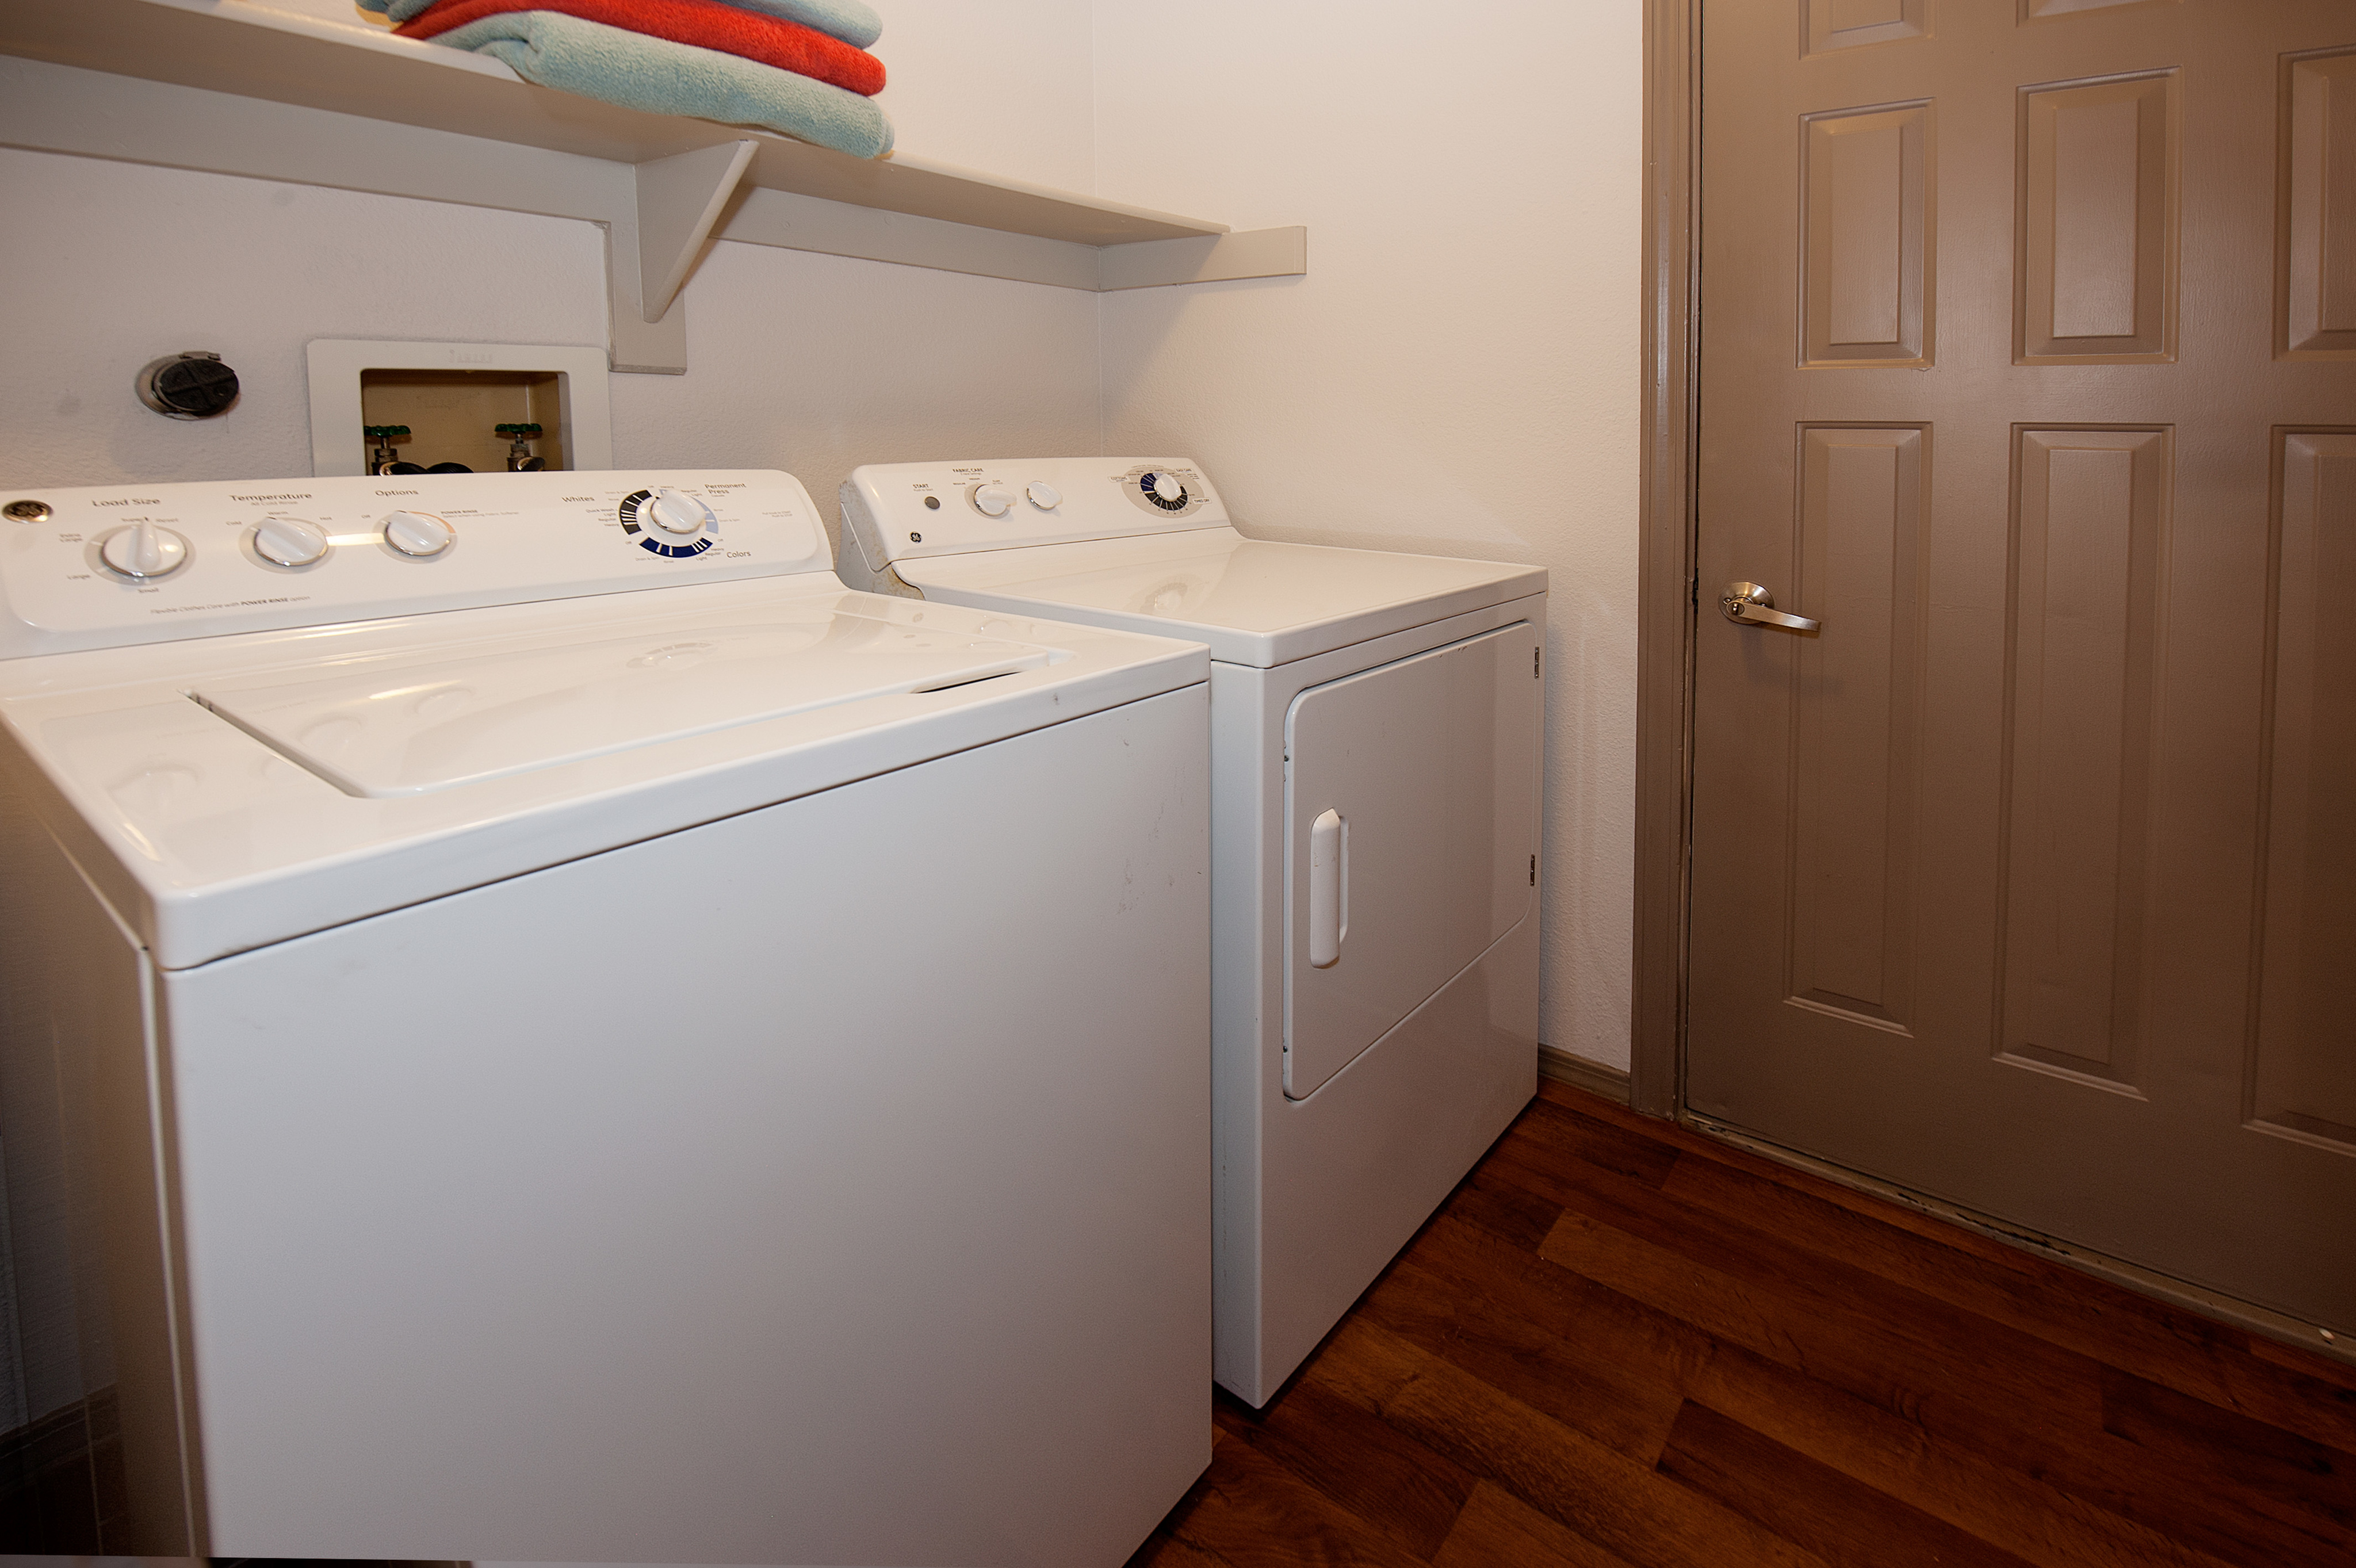 View of Laundry Room, Showing Attached, Full Size Washer and Dryer, and Shelving at Pavilions Apartments